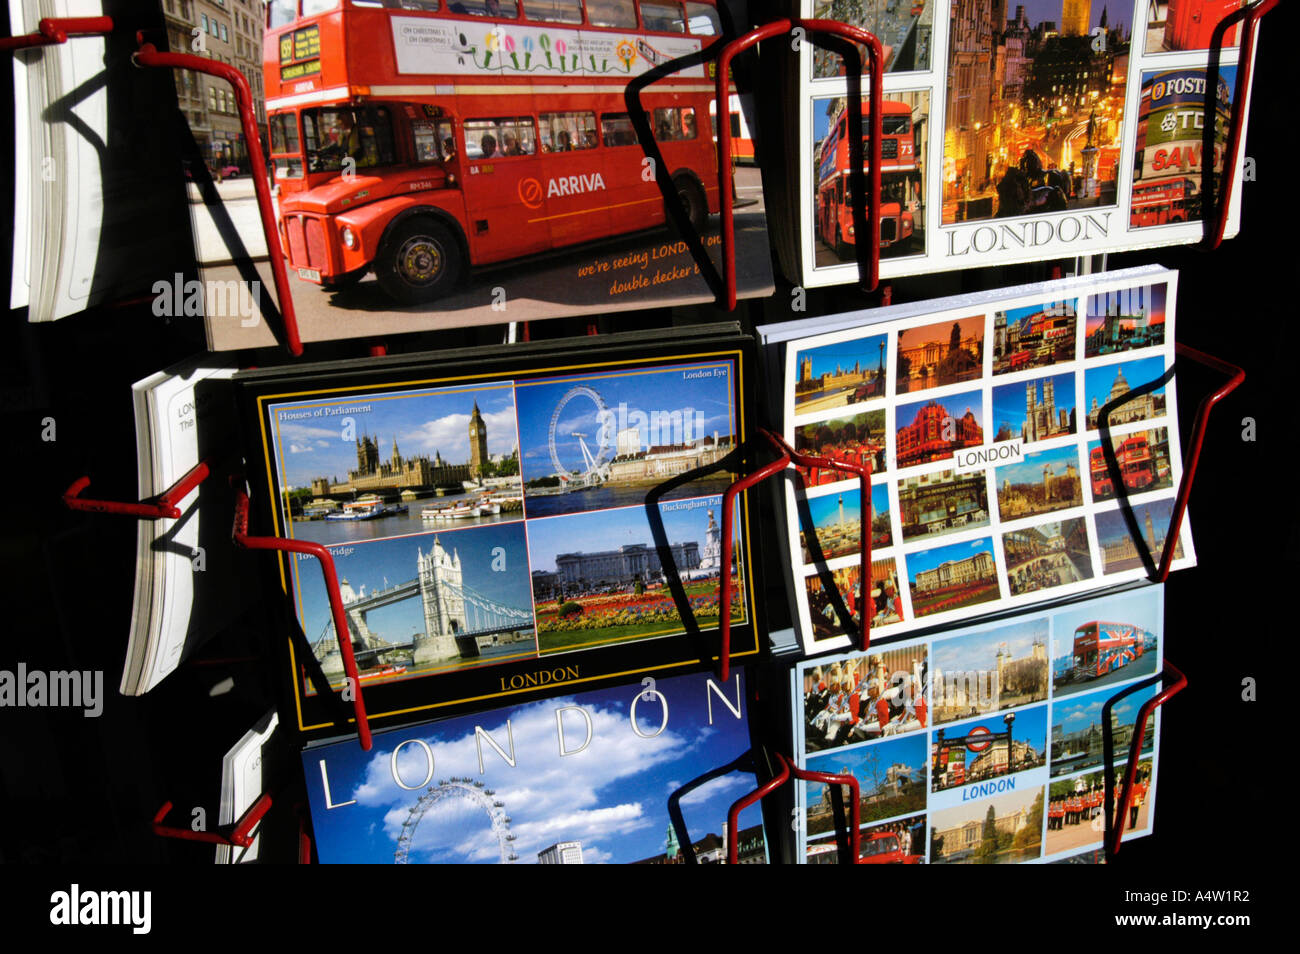 Postcards on display rack of famous London sites, England UK - Stock Image